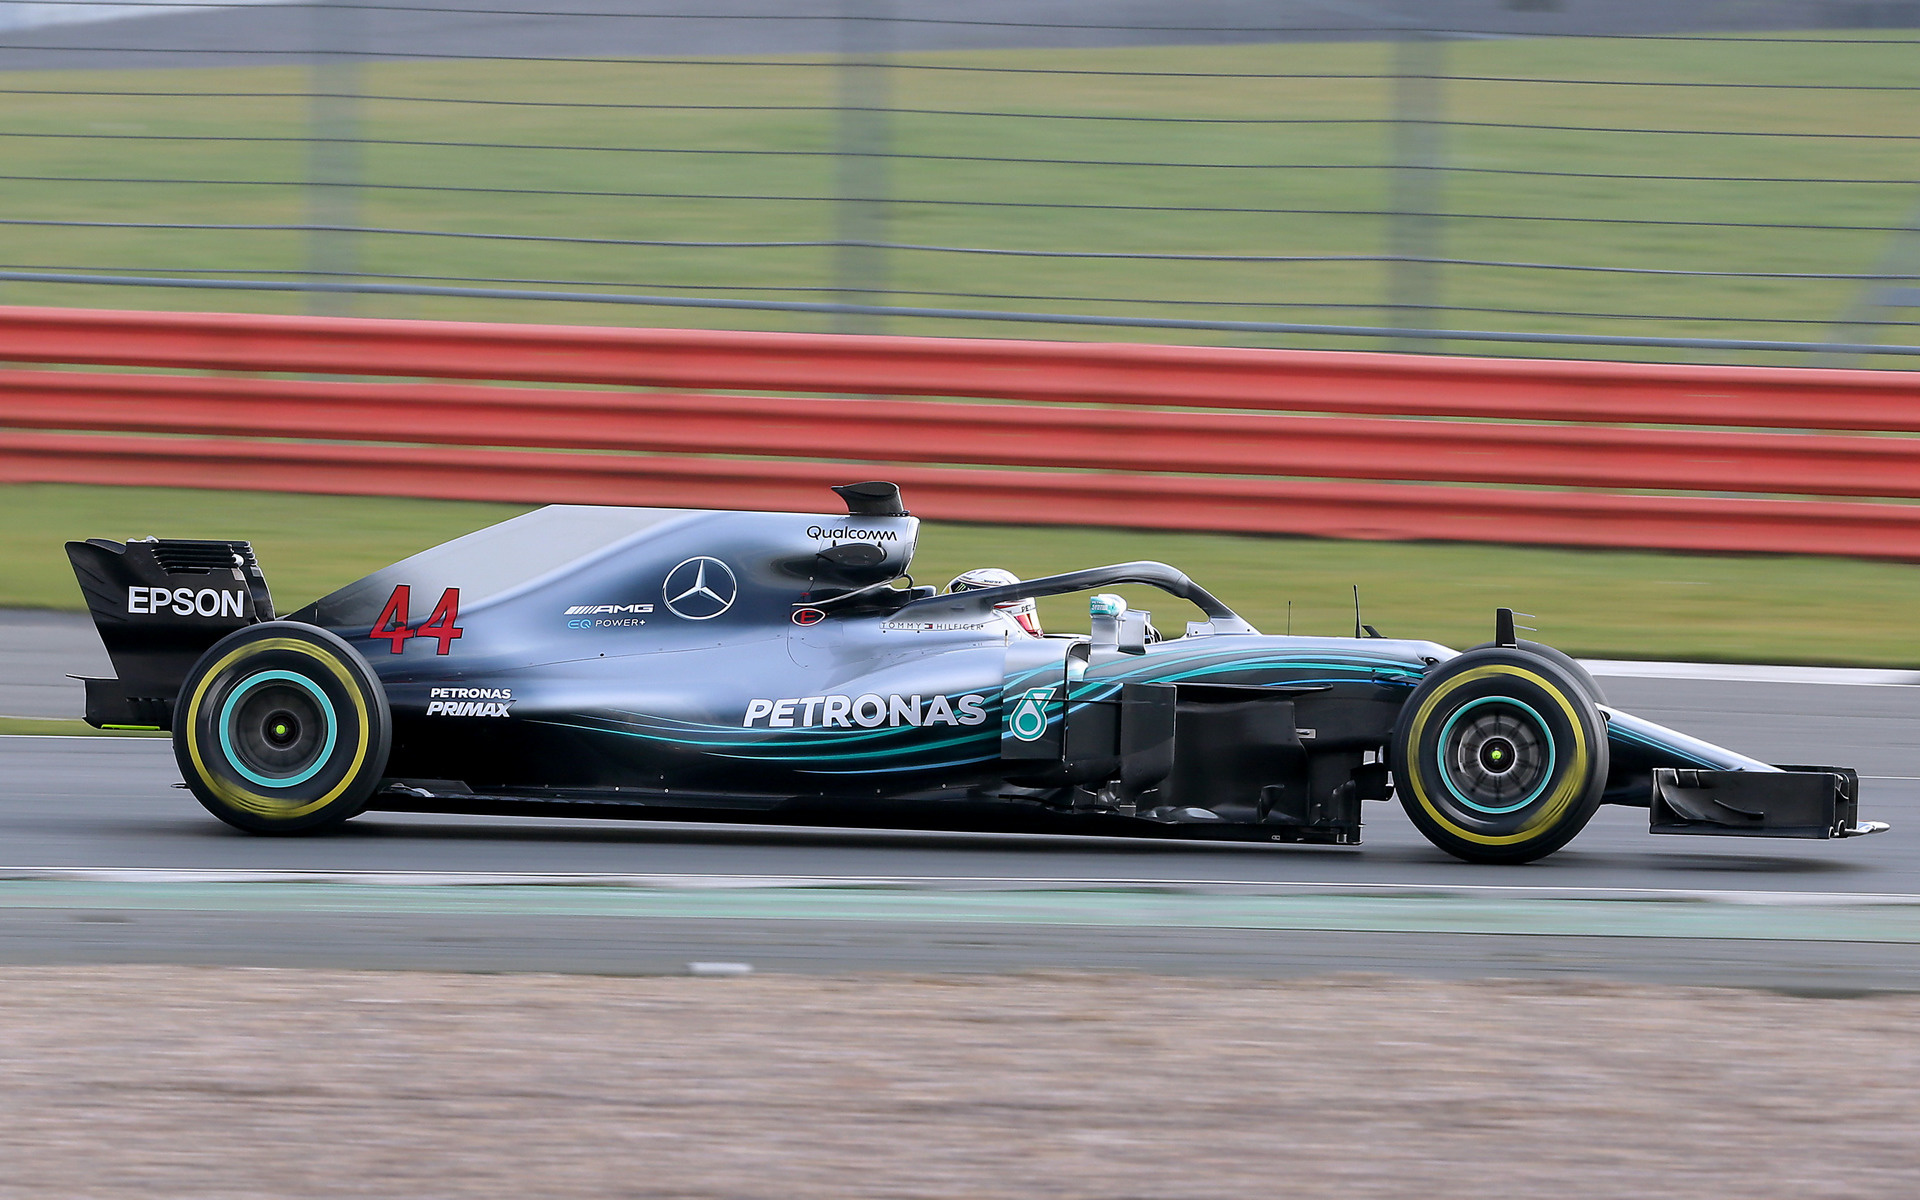 2018 Mercedes-AMG F1 W09 EQ Power+ - Wallpapers and HD ...